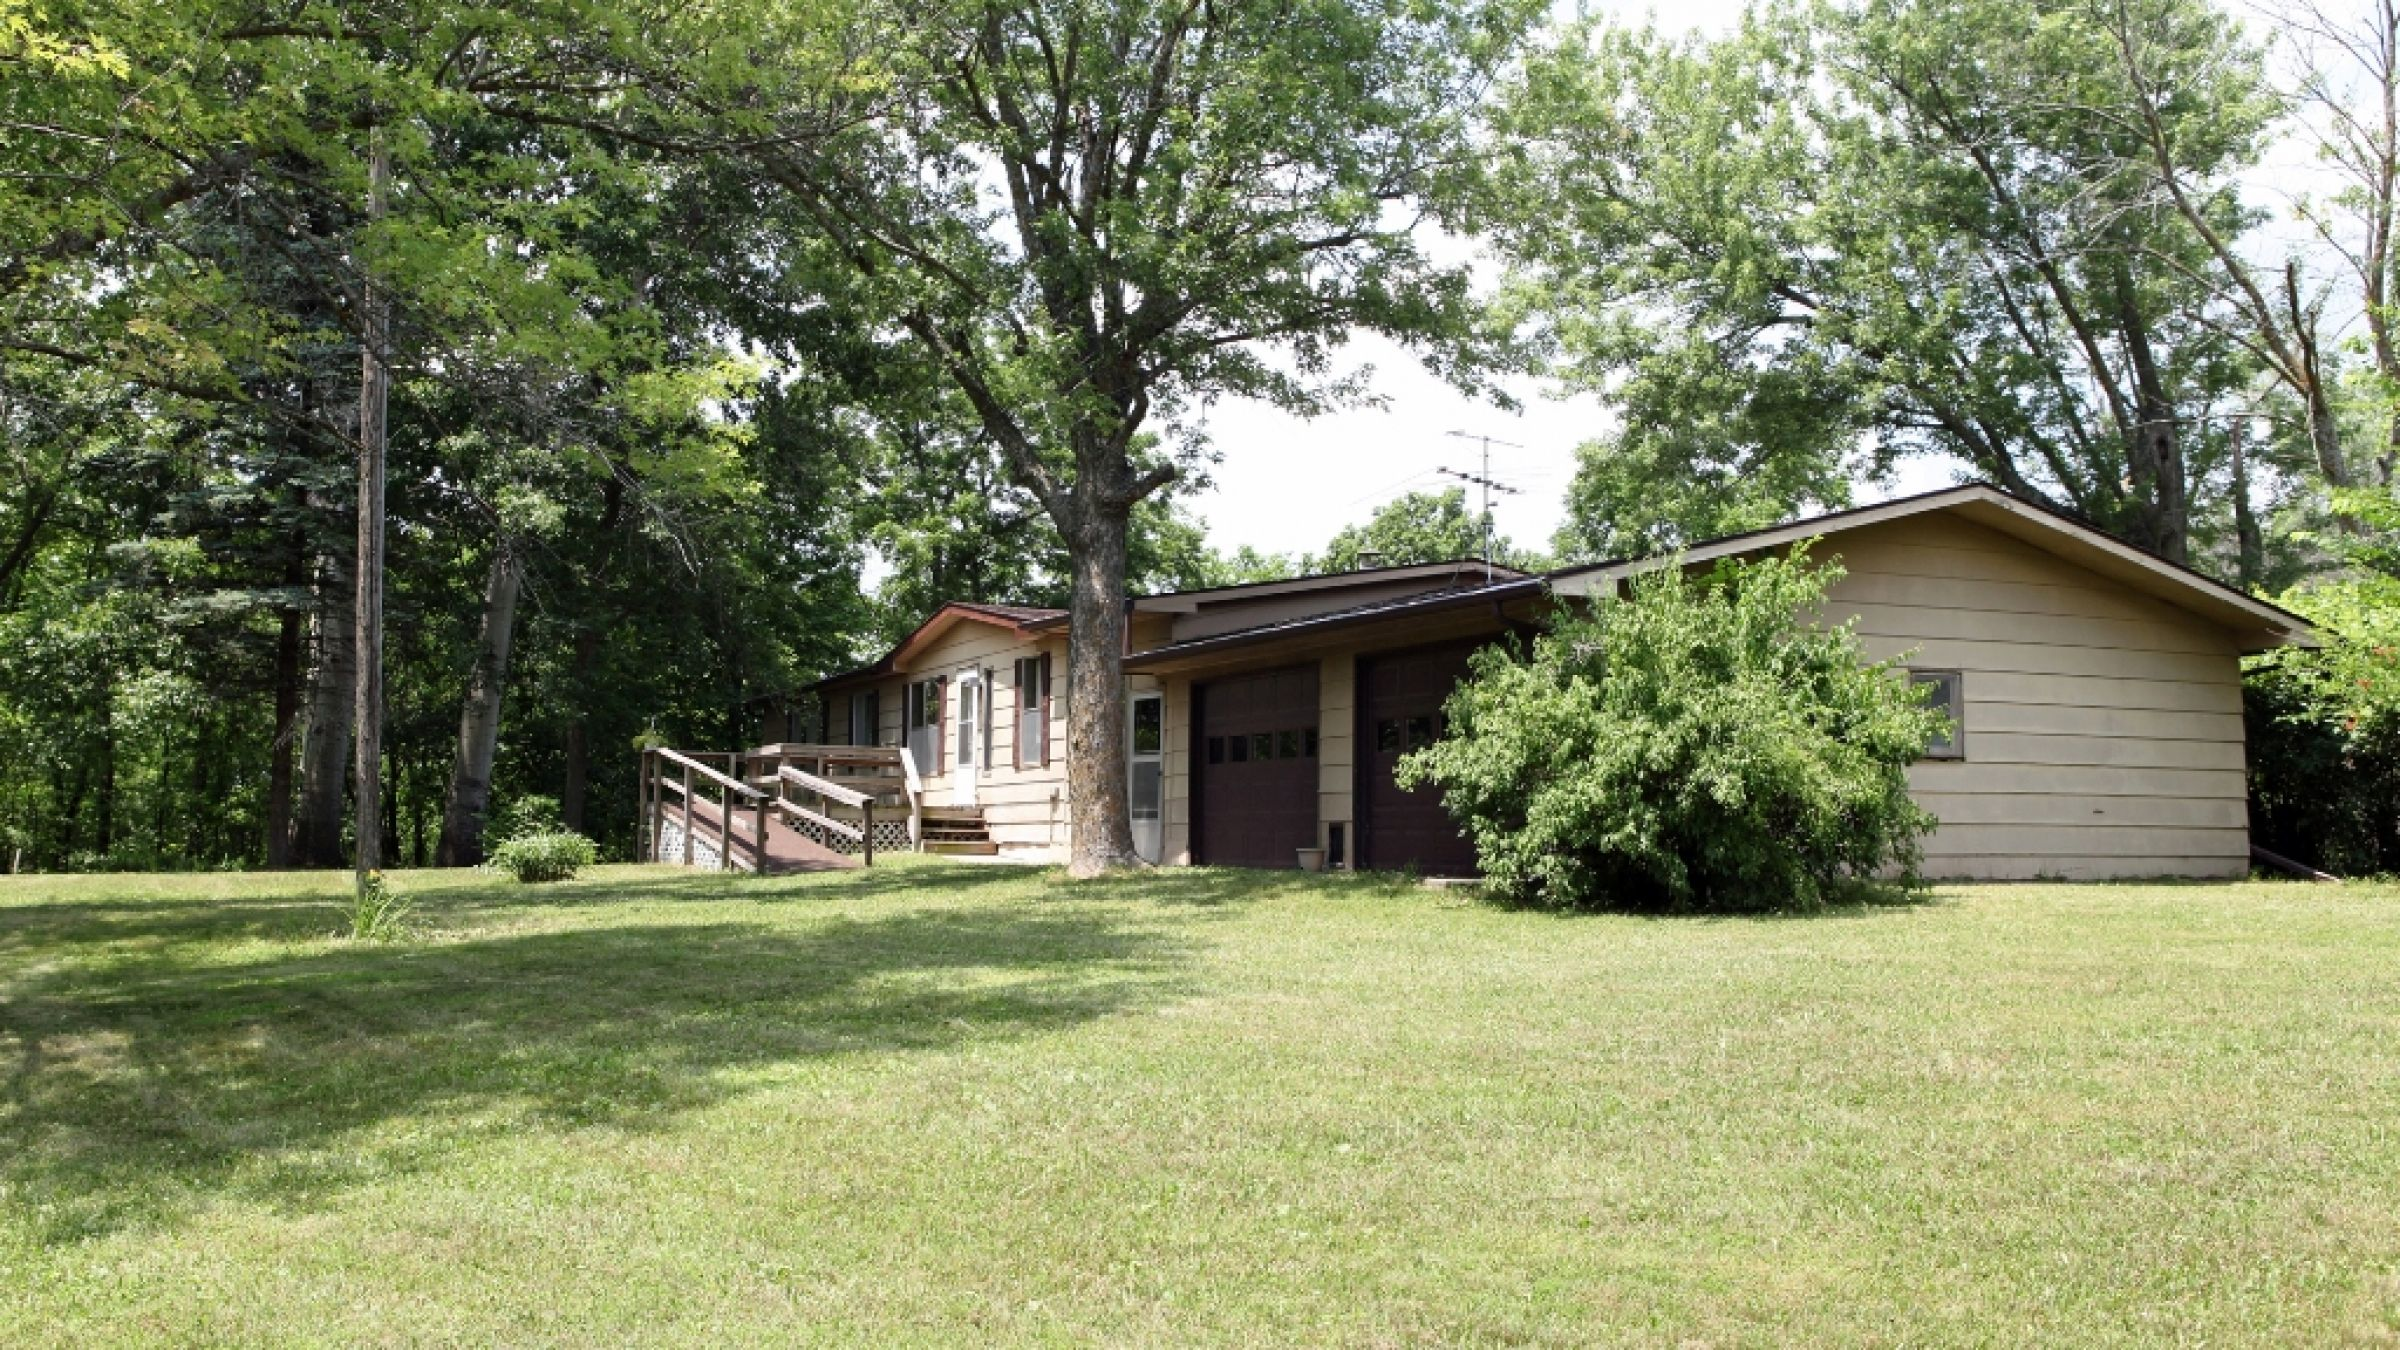 residential-lucas-county-iowa-2-acres-listing-number-15392-7-2021-03-03-215635.JPG